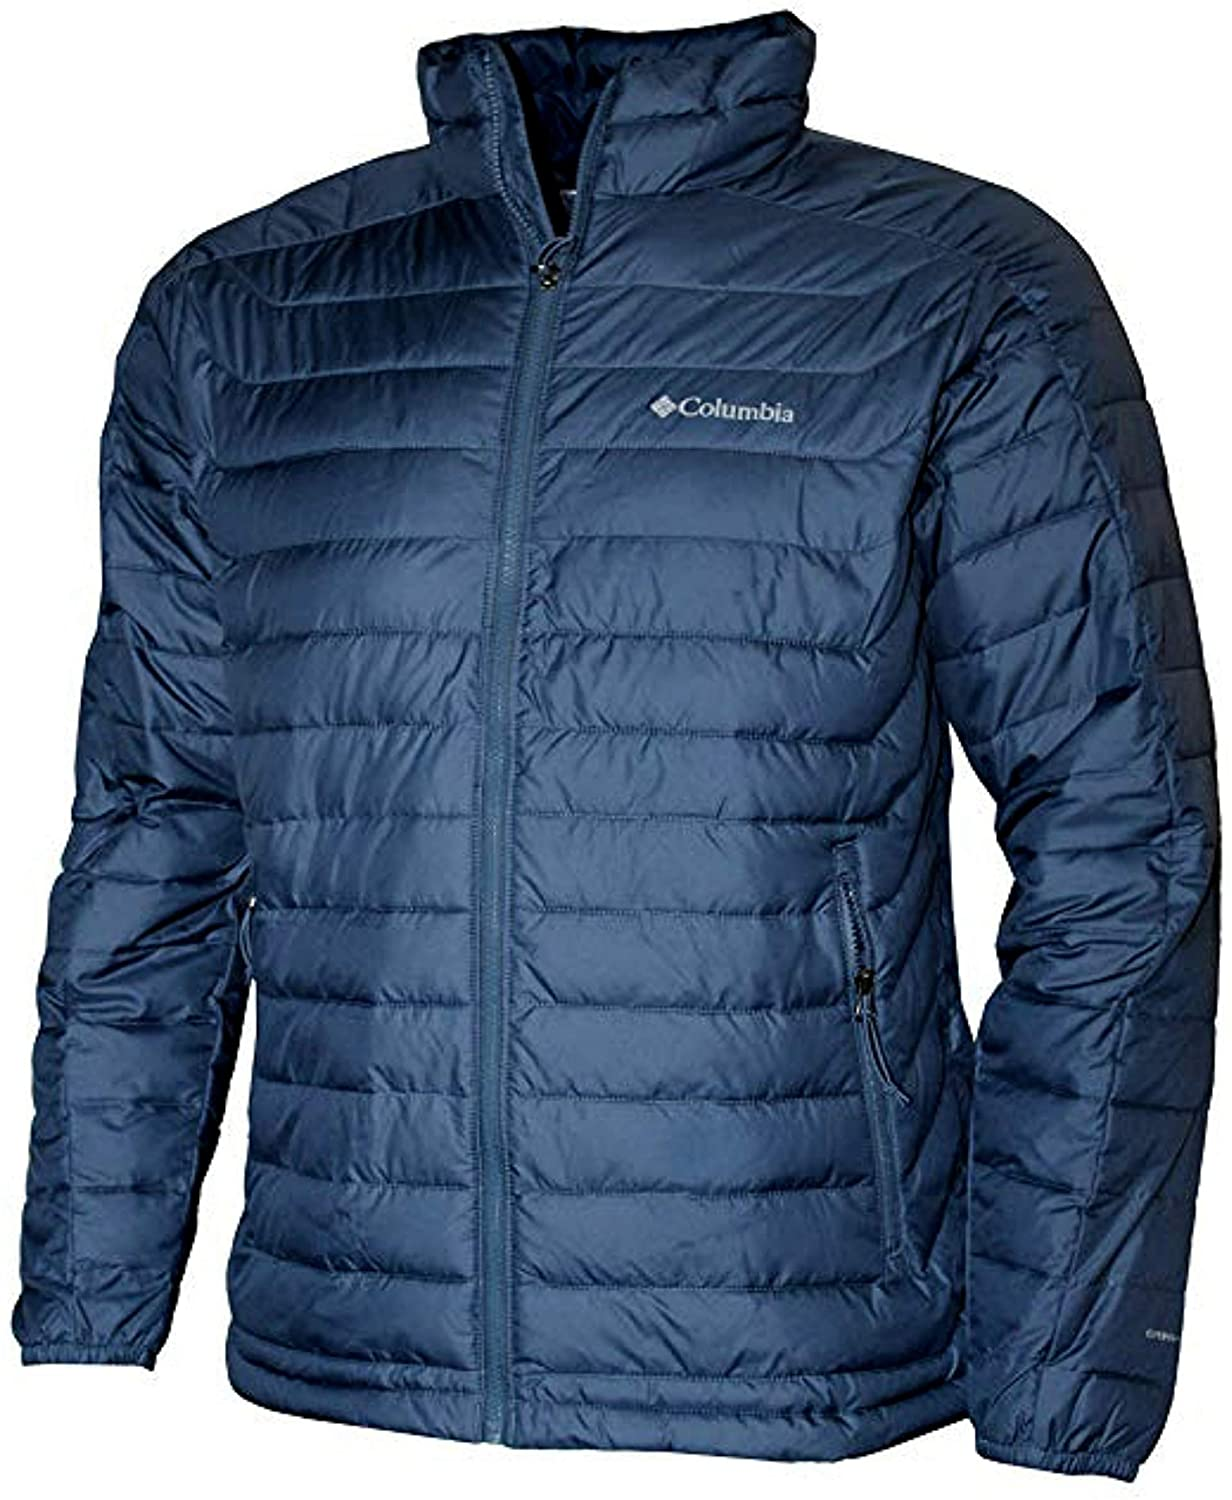 2021 autumn and winter new Columbia Men's White High quality Out II Insulated Heat Jacket Omni Puffer